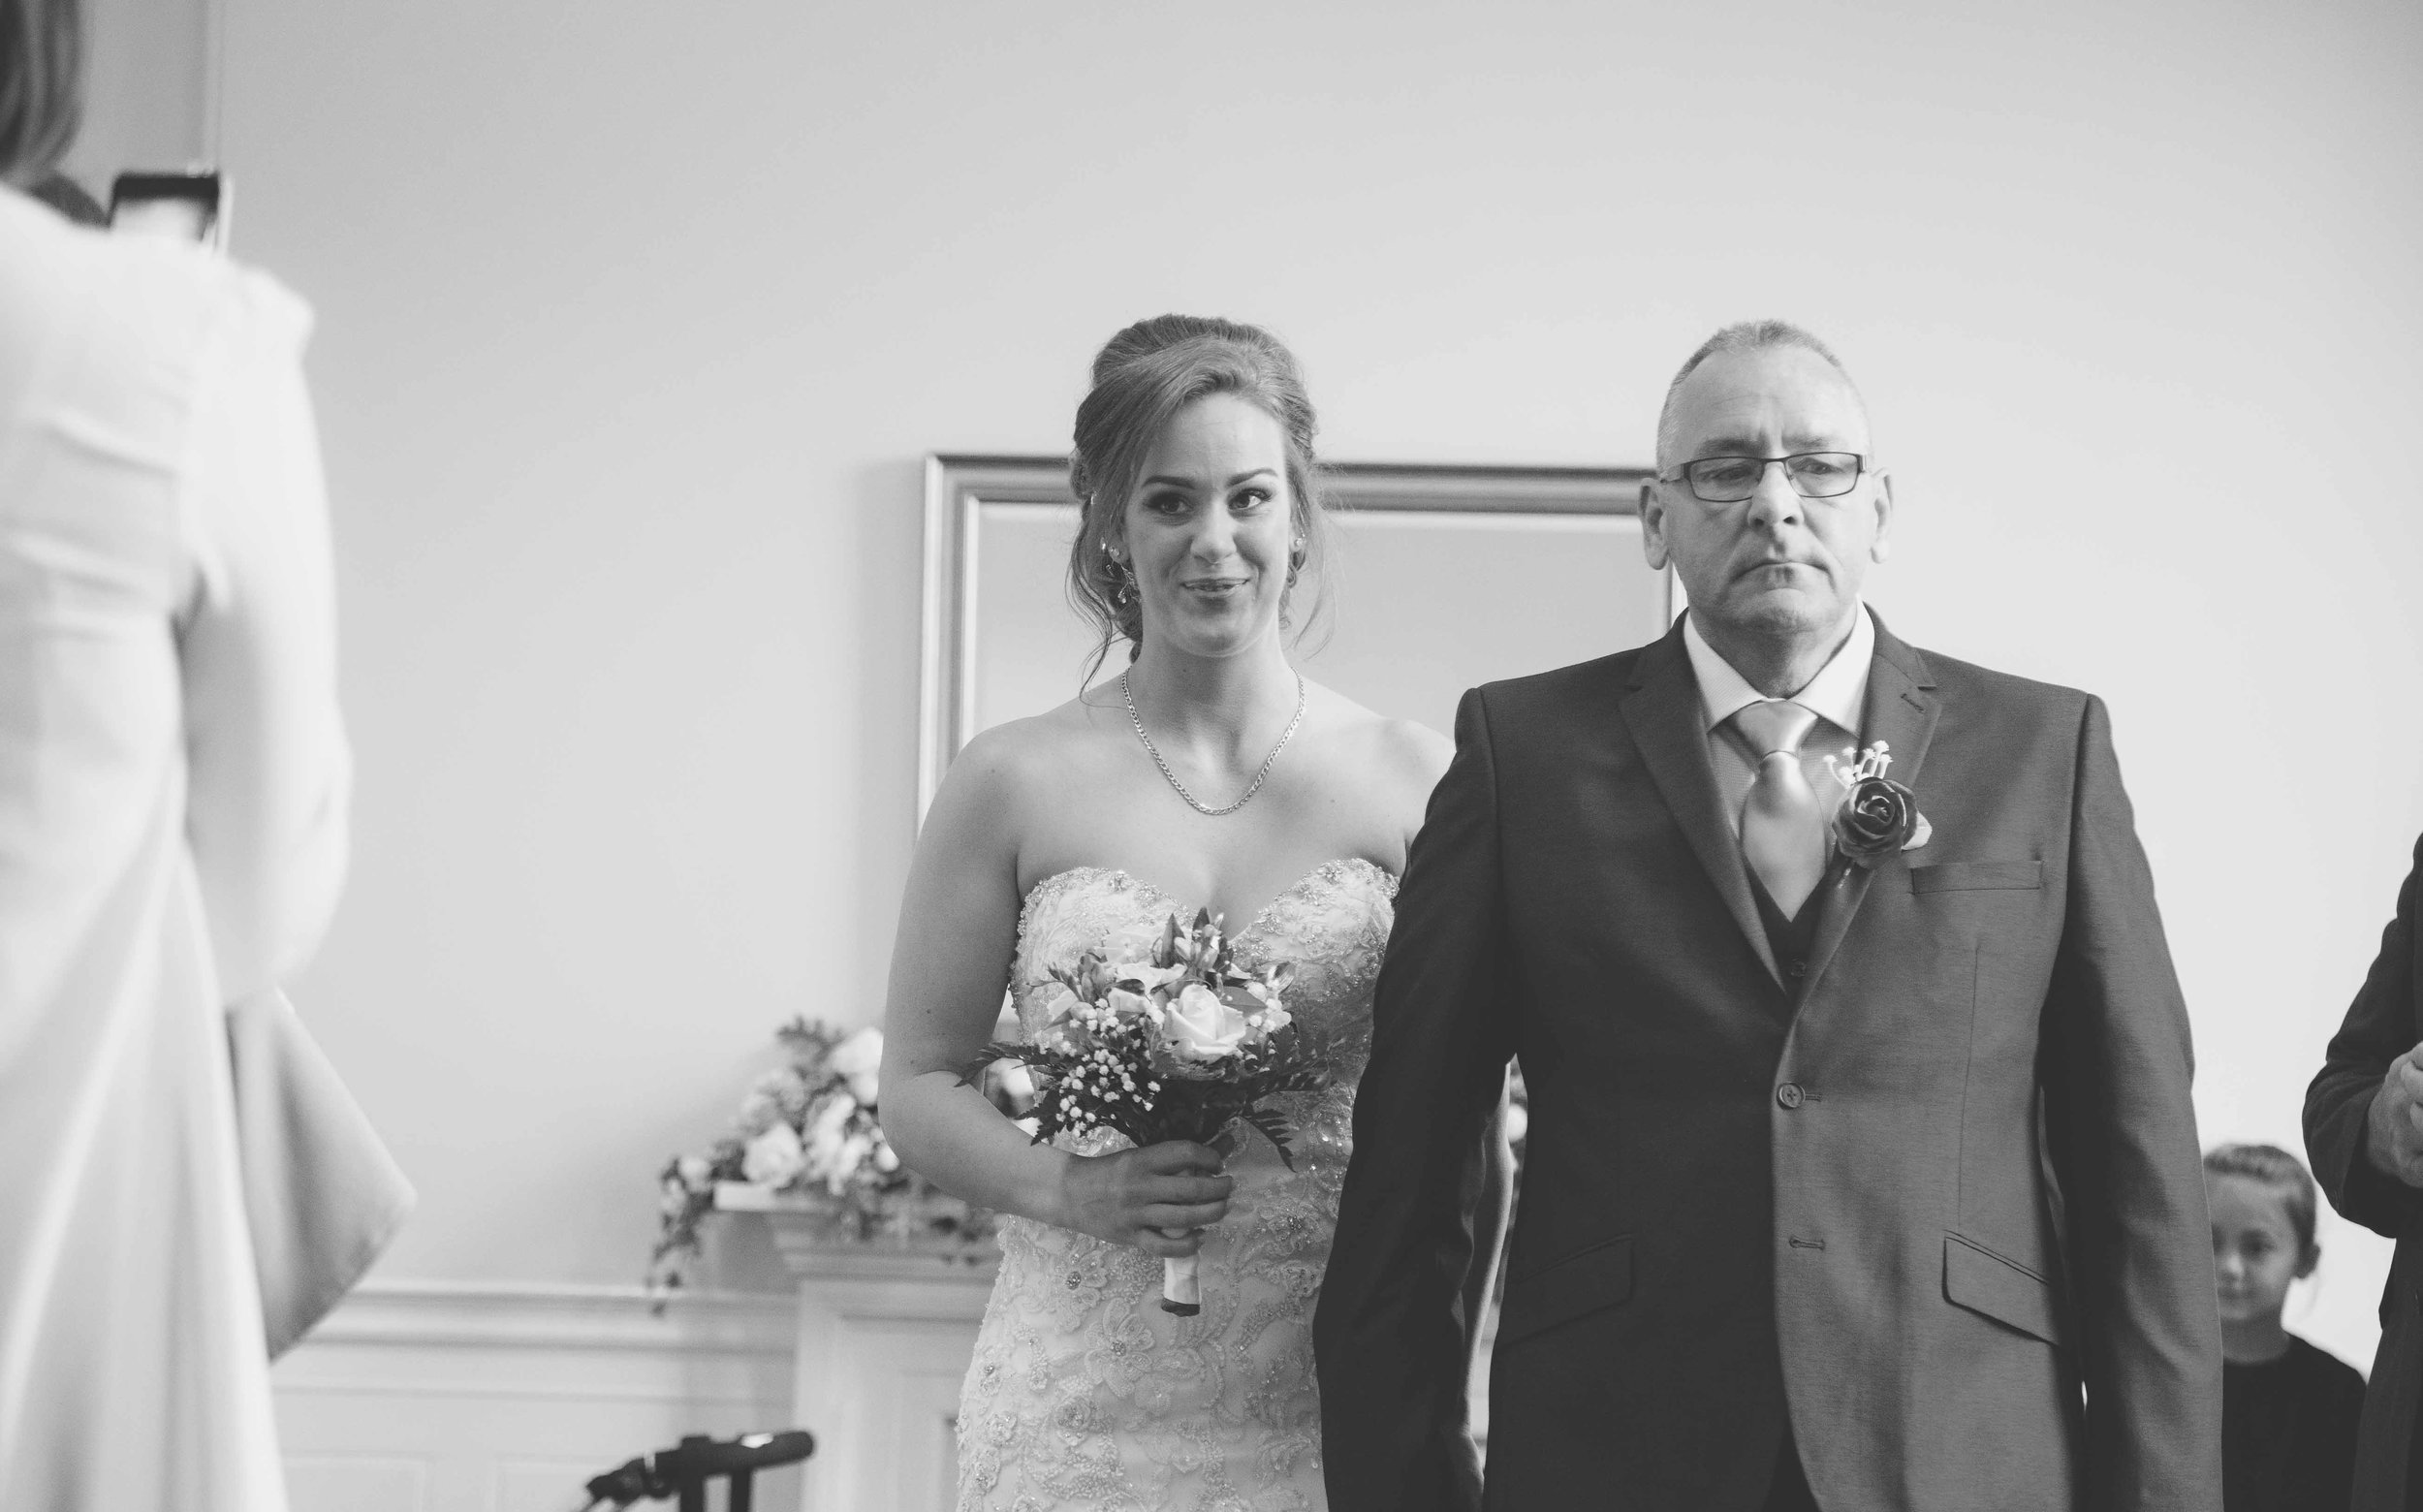 wedding-photos-at-st-georges-hall-liverpool (17 of 122).jpg